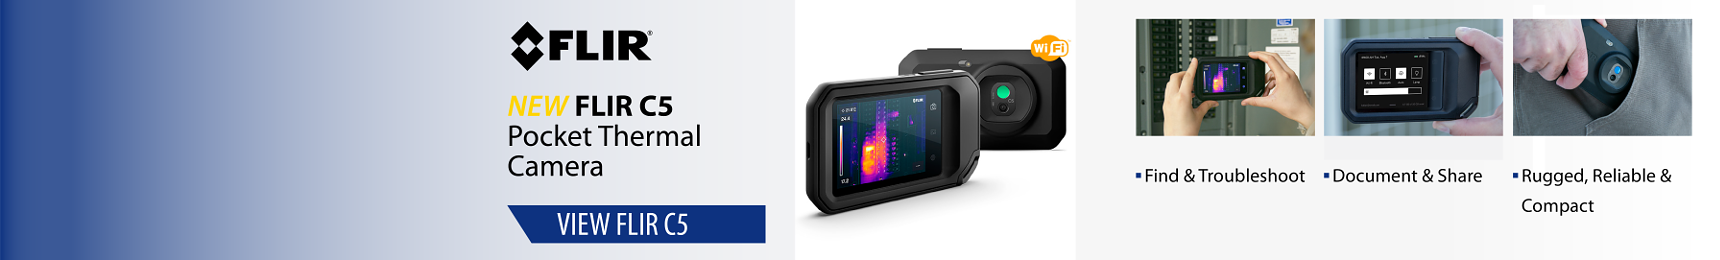 FLIR C2 Pocket Thermal Camera